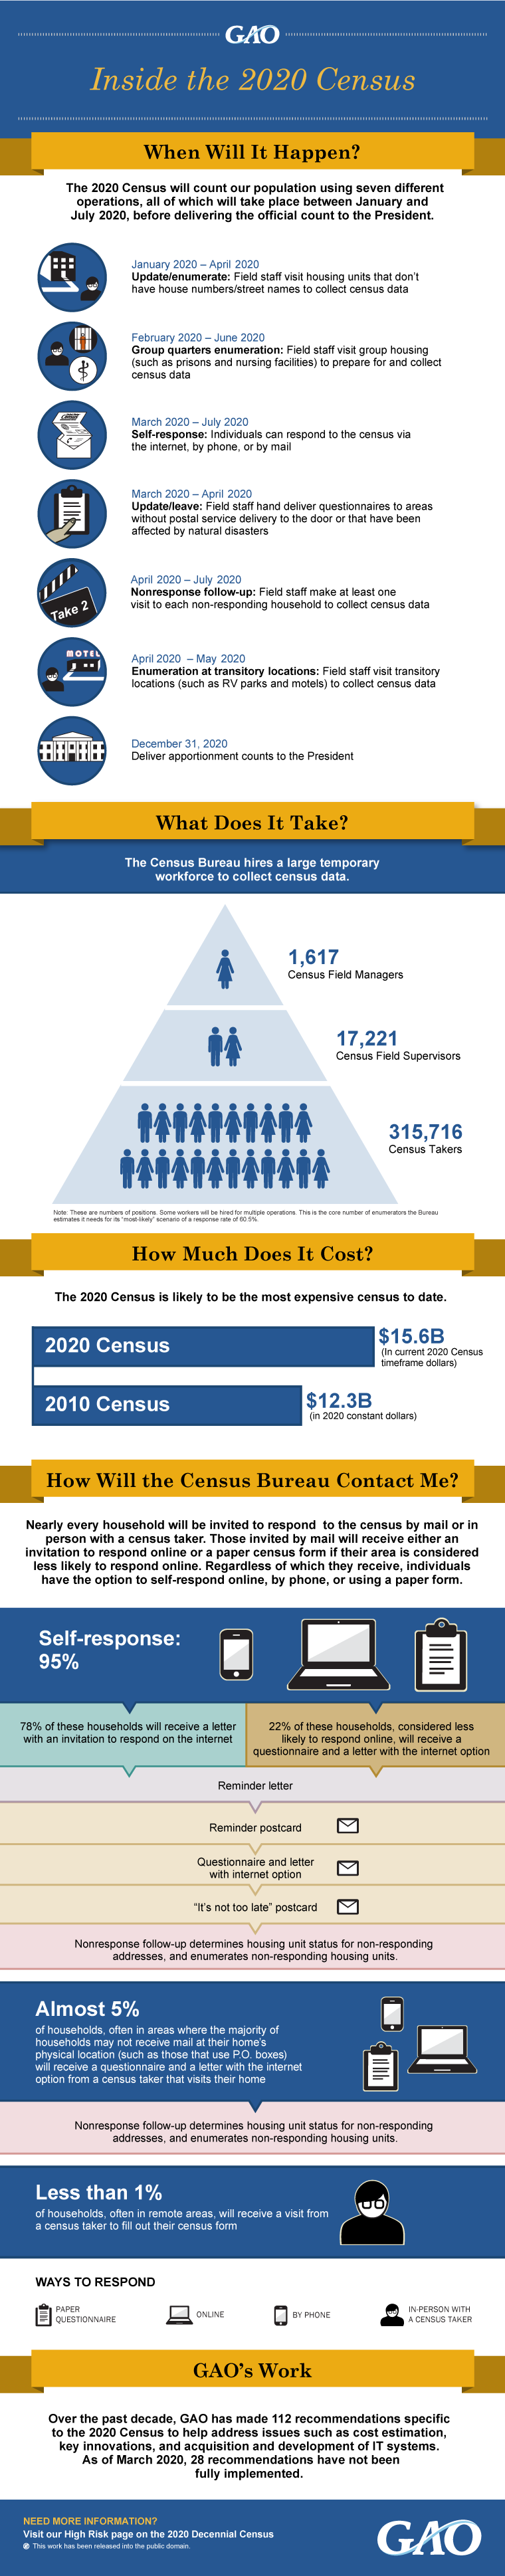 INFOGRAPHIC: Inside the 2020 Census